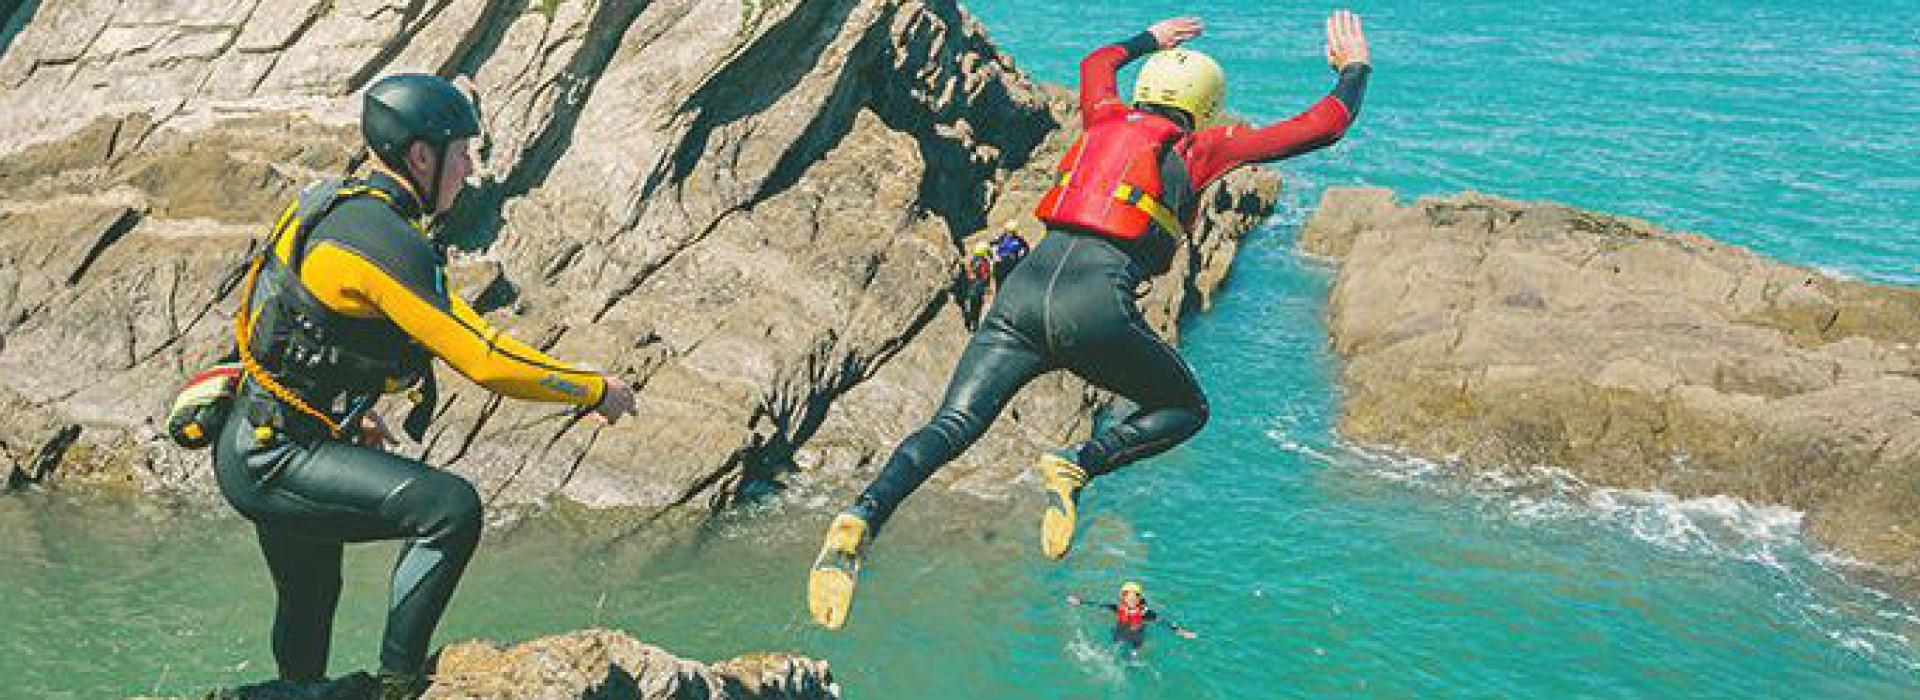 Coasteering guide course